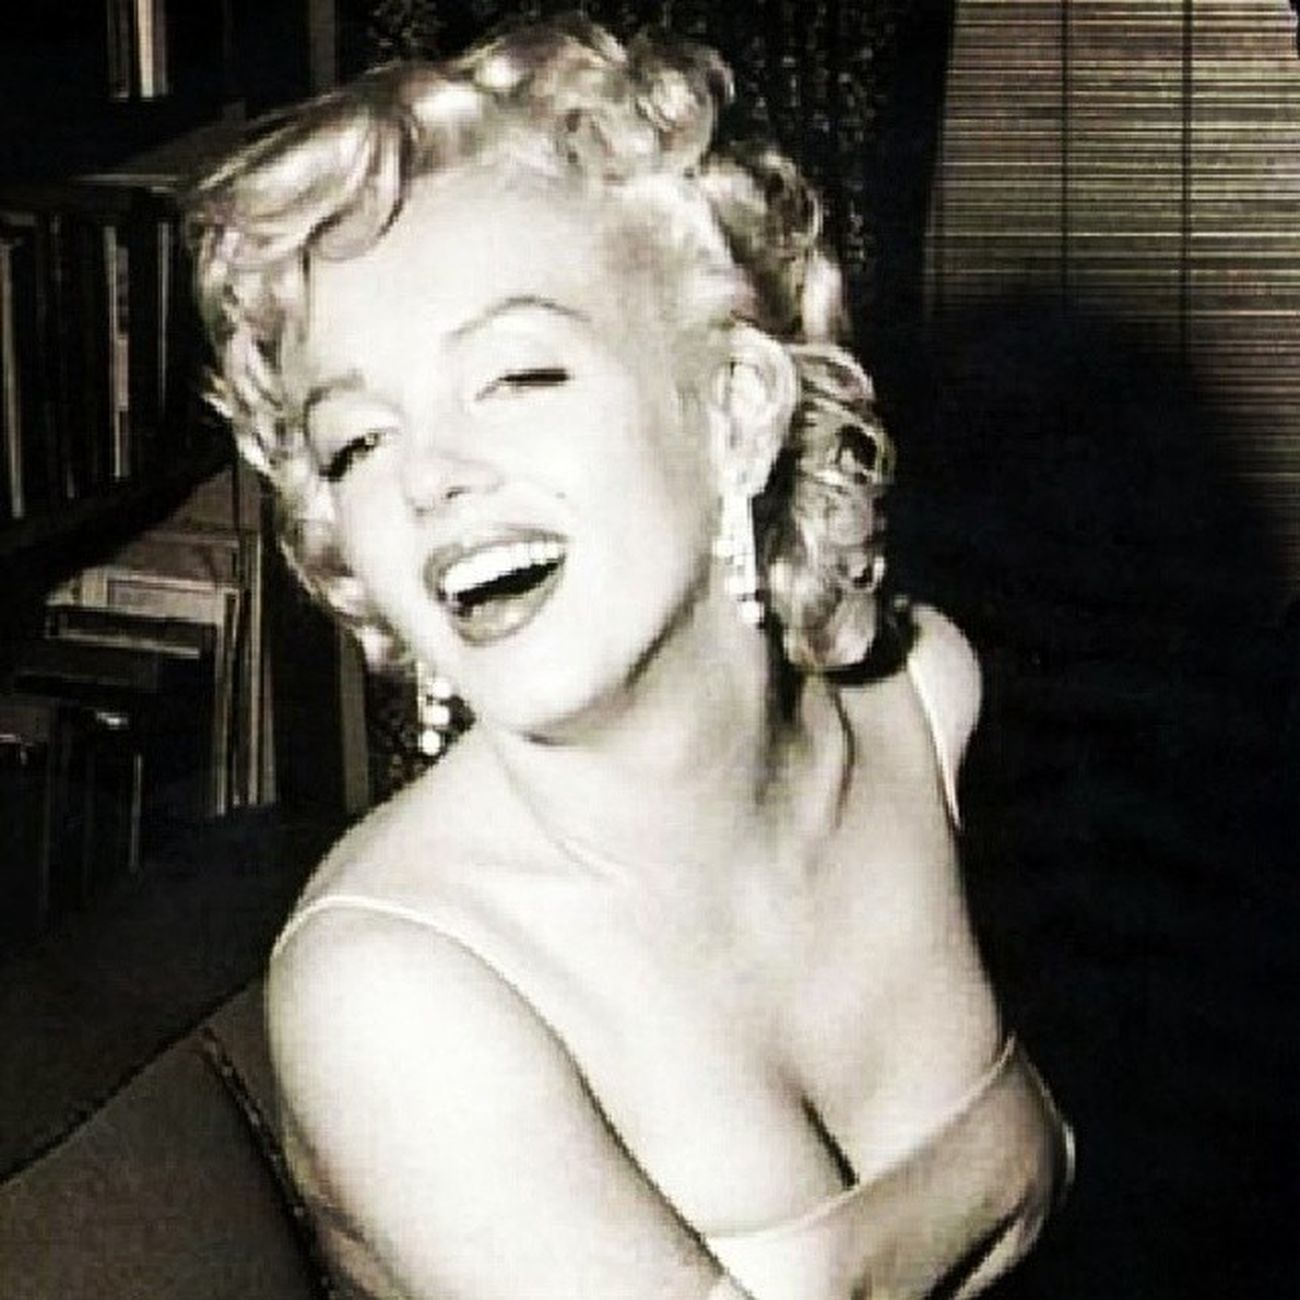 A wise girl kisses but doesn't love, listens but doesn't believe, and leaves before she is left. Forever  BrightnessMm Norma Jean